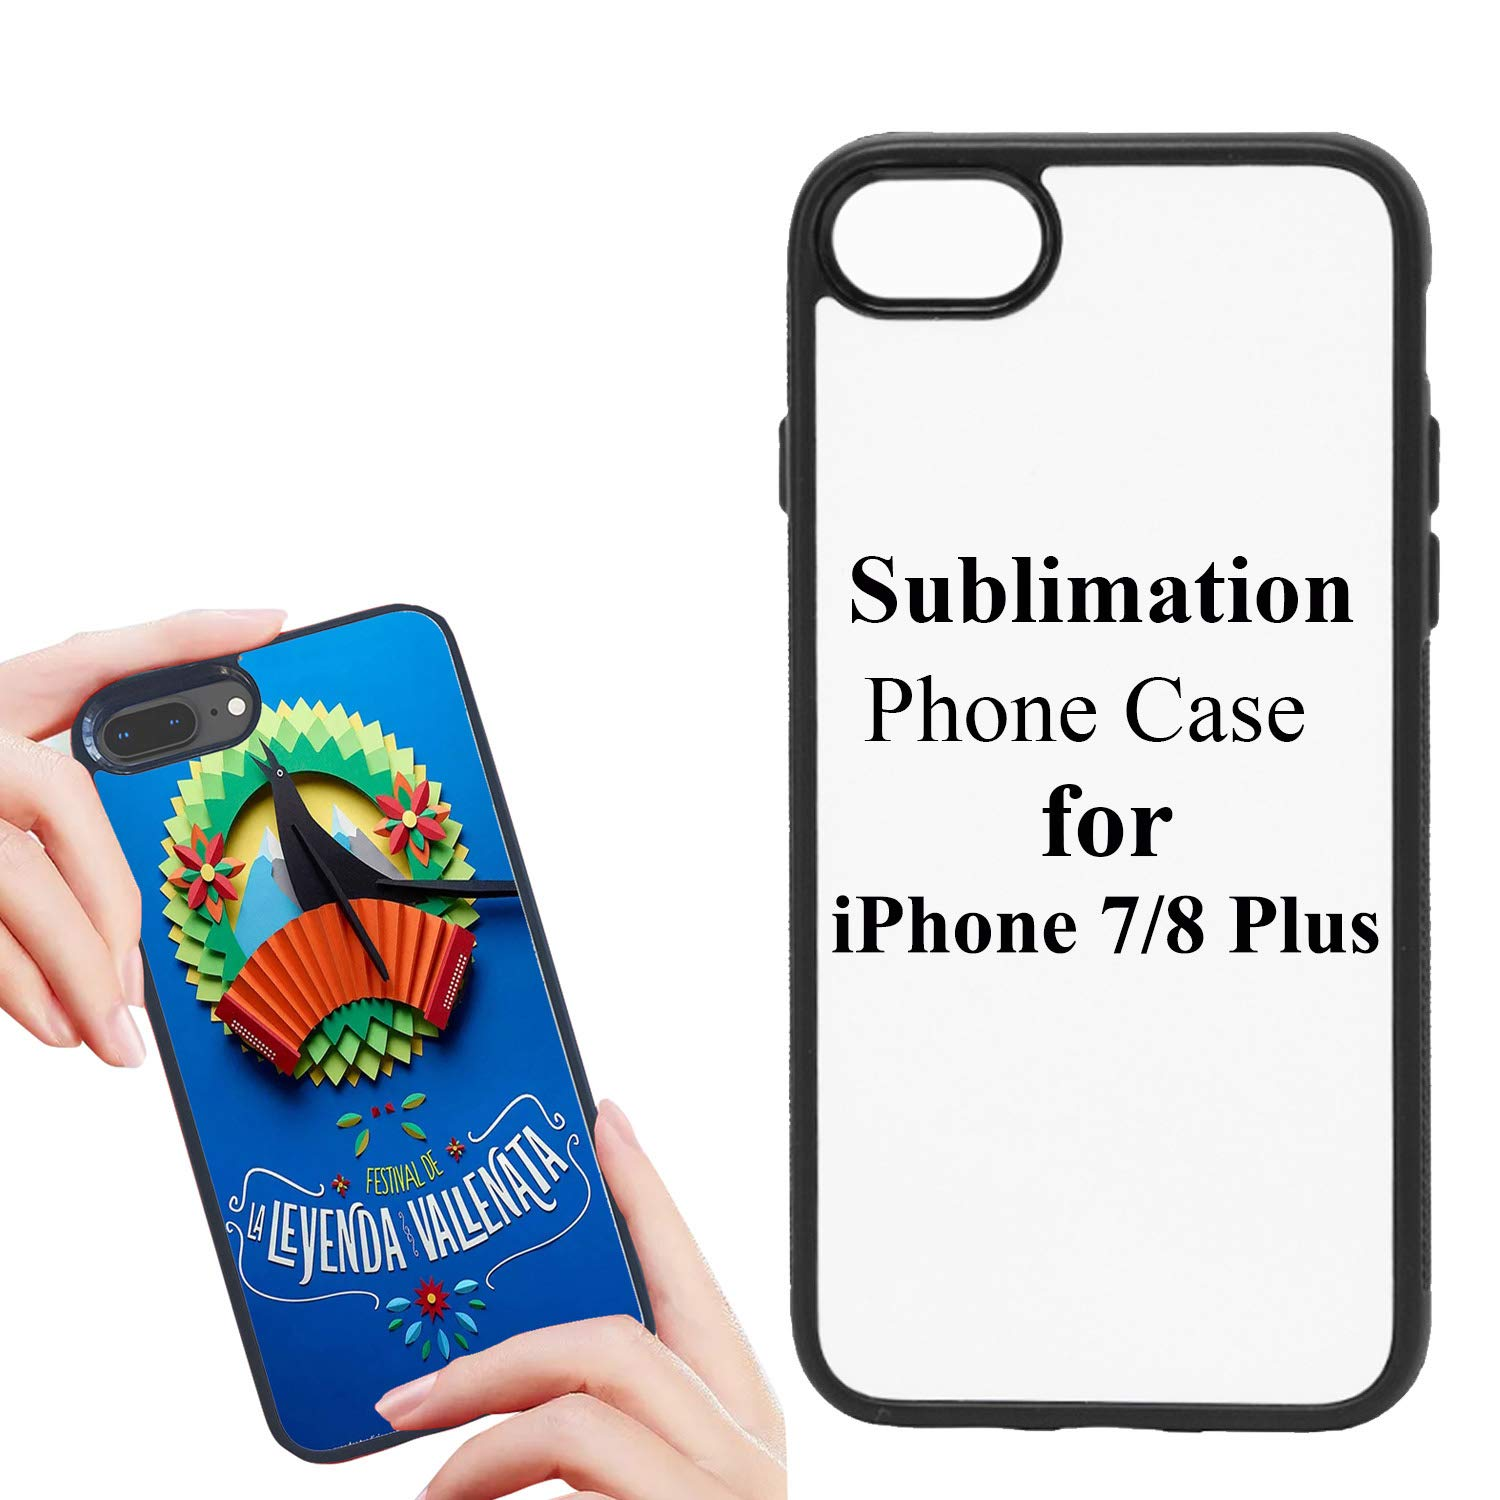 """JUSTRY 5 PCS Sublimation Blanks 2D Phone Case Covers Soft Rubber Compatible with iPhone 7/8 Plus, 5.5"""" Blank Cell Phone Protective Personalized Phone Case NO Glitter Finish"""